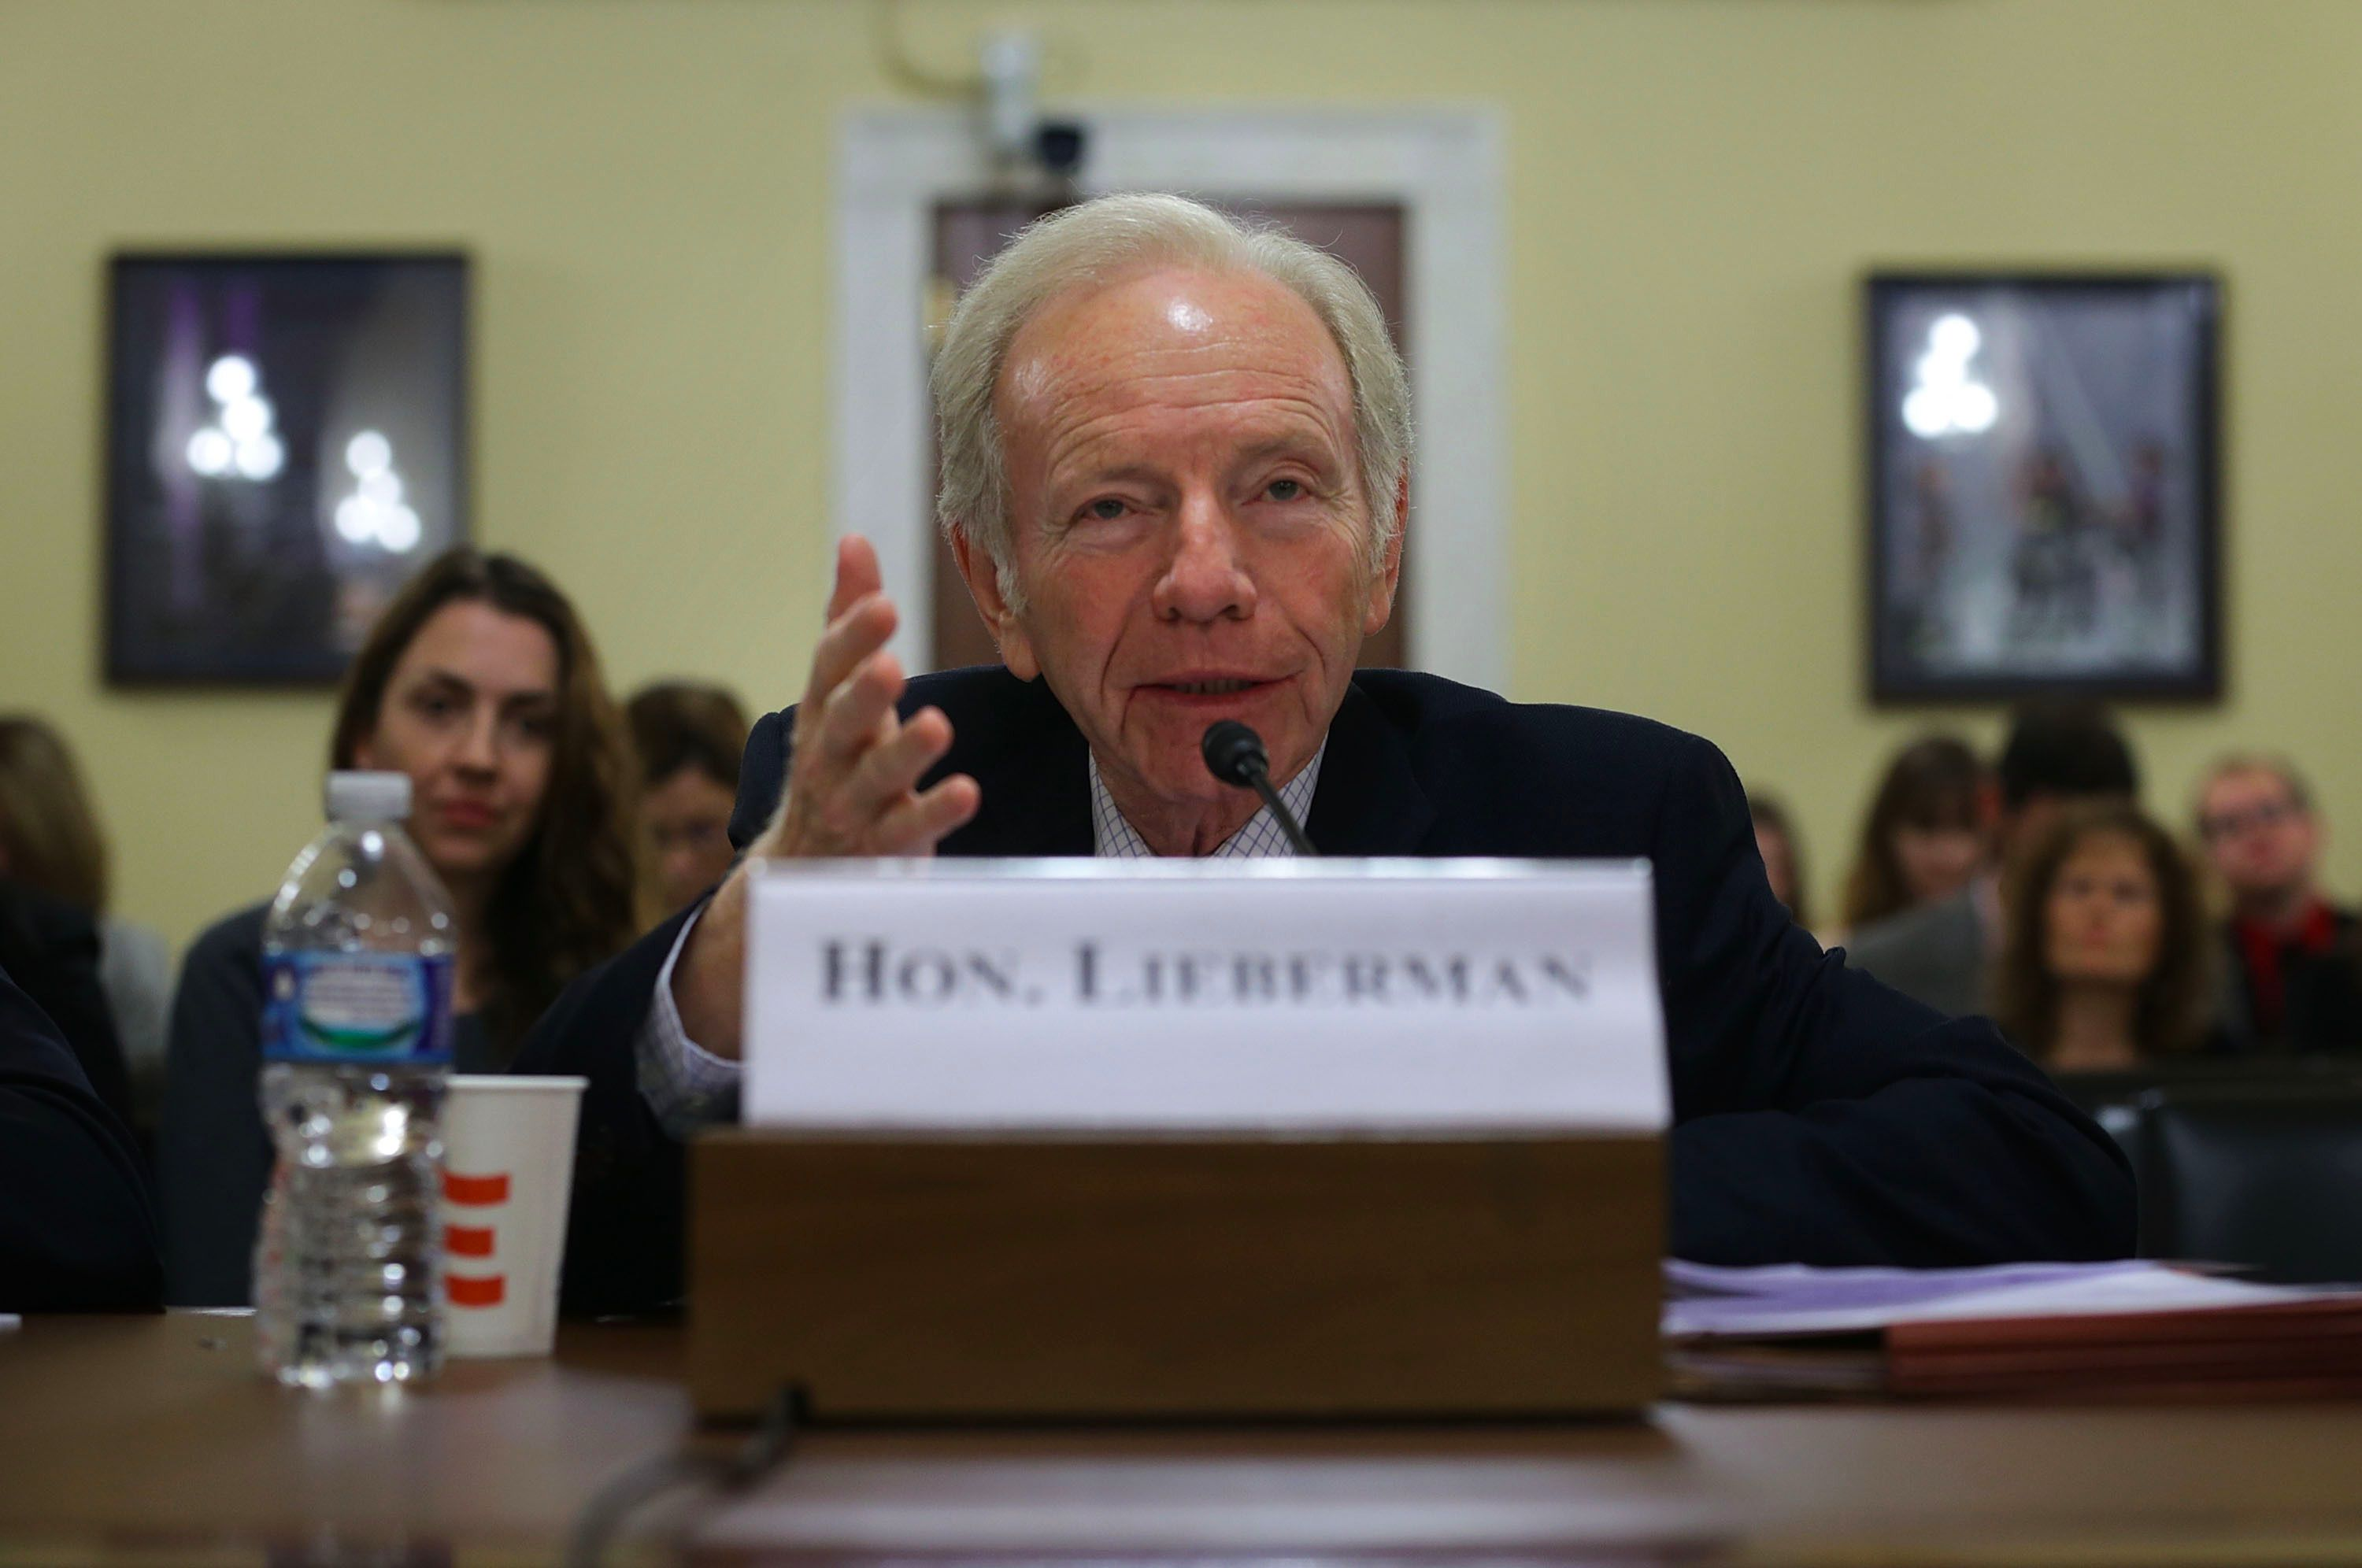 Former Sen. Joseph Lieberman (I-CT) testifies during a hearing before the House Homeland Security Committee November 3, 2015 on Capitol Hill in Washington, DC.